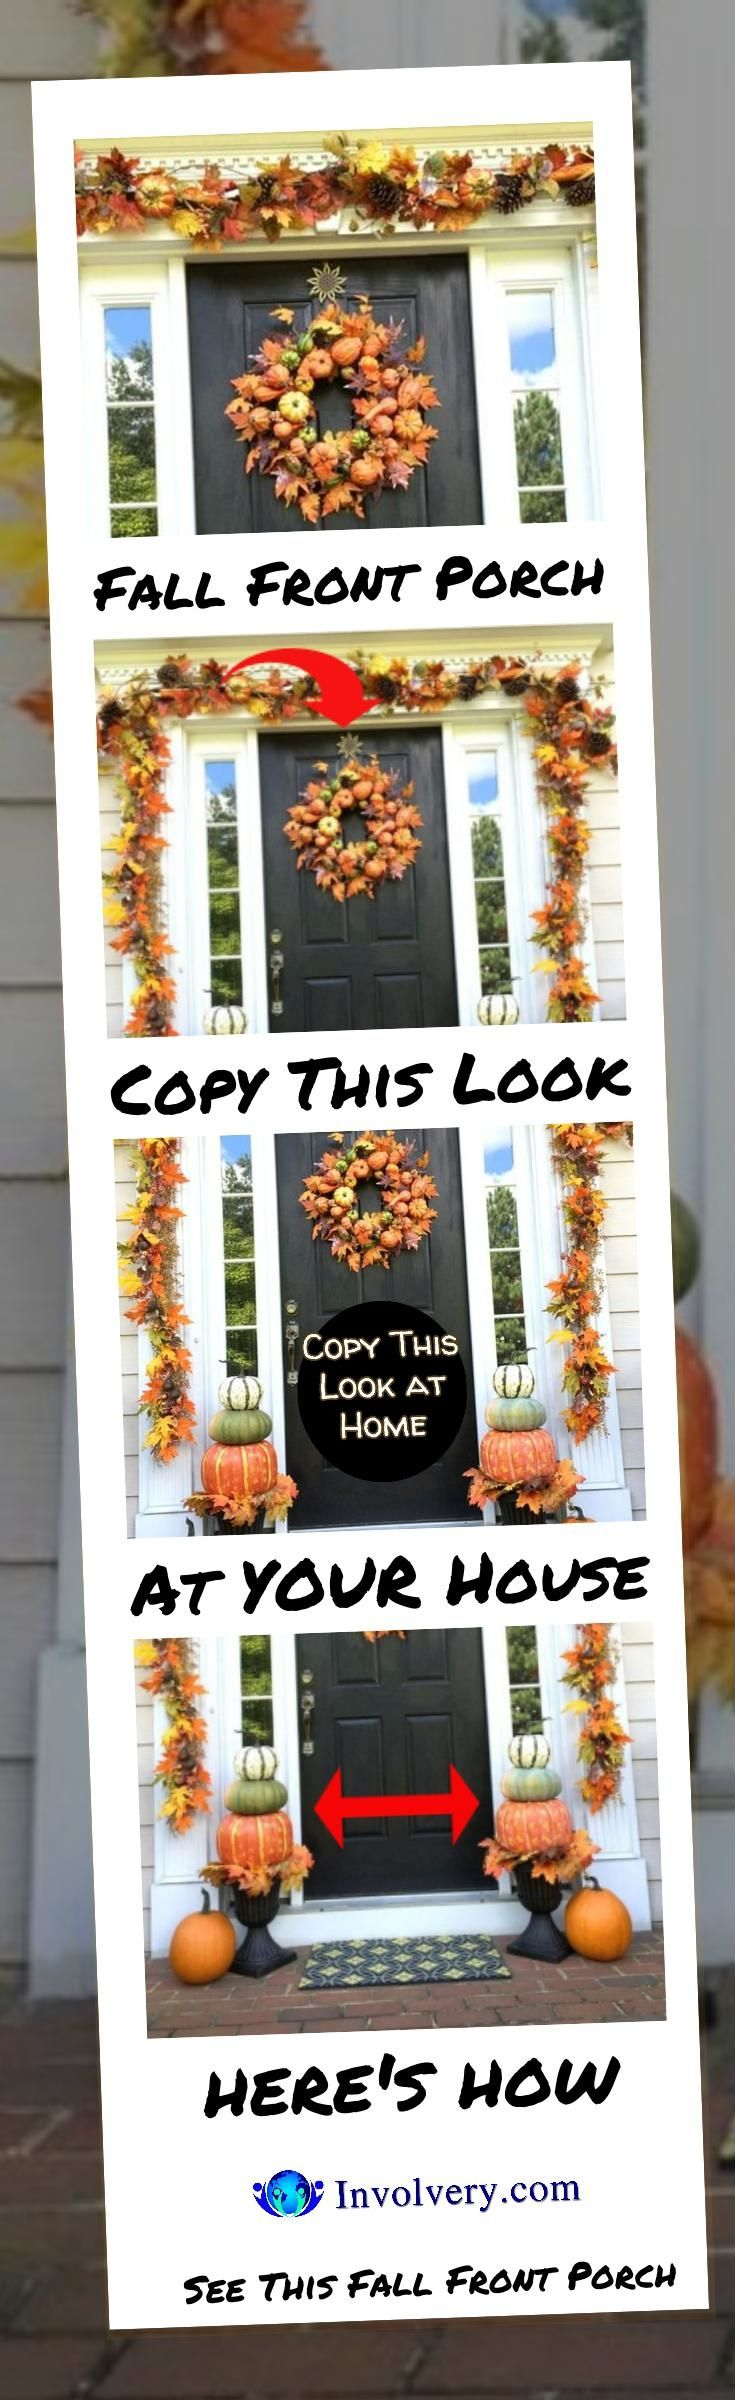 COPY THIS LOOK - DIY Fall Front Porch Decorating Idea